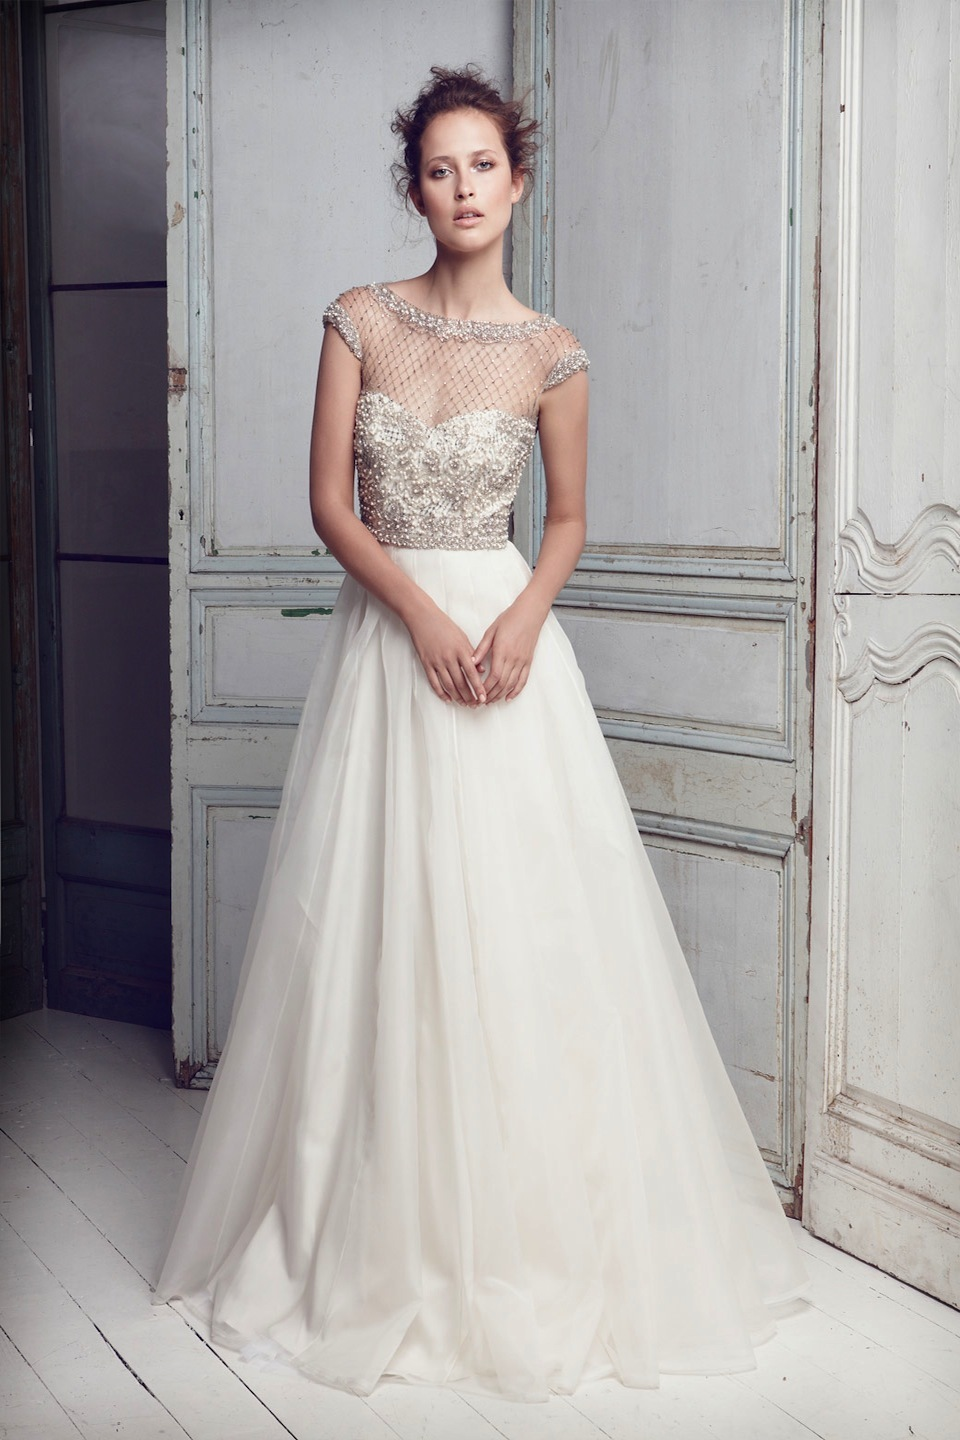 Collette-dinnigan-wedding-dress-2012-bridal-gowns-11.full